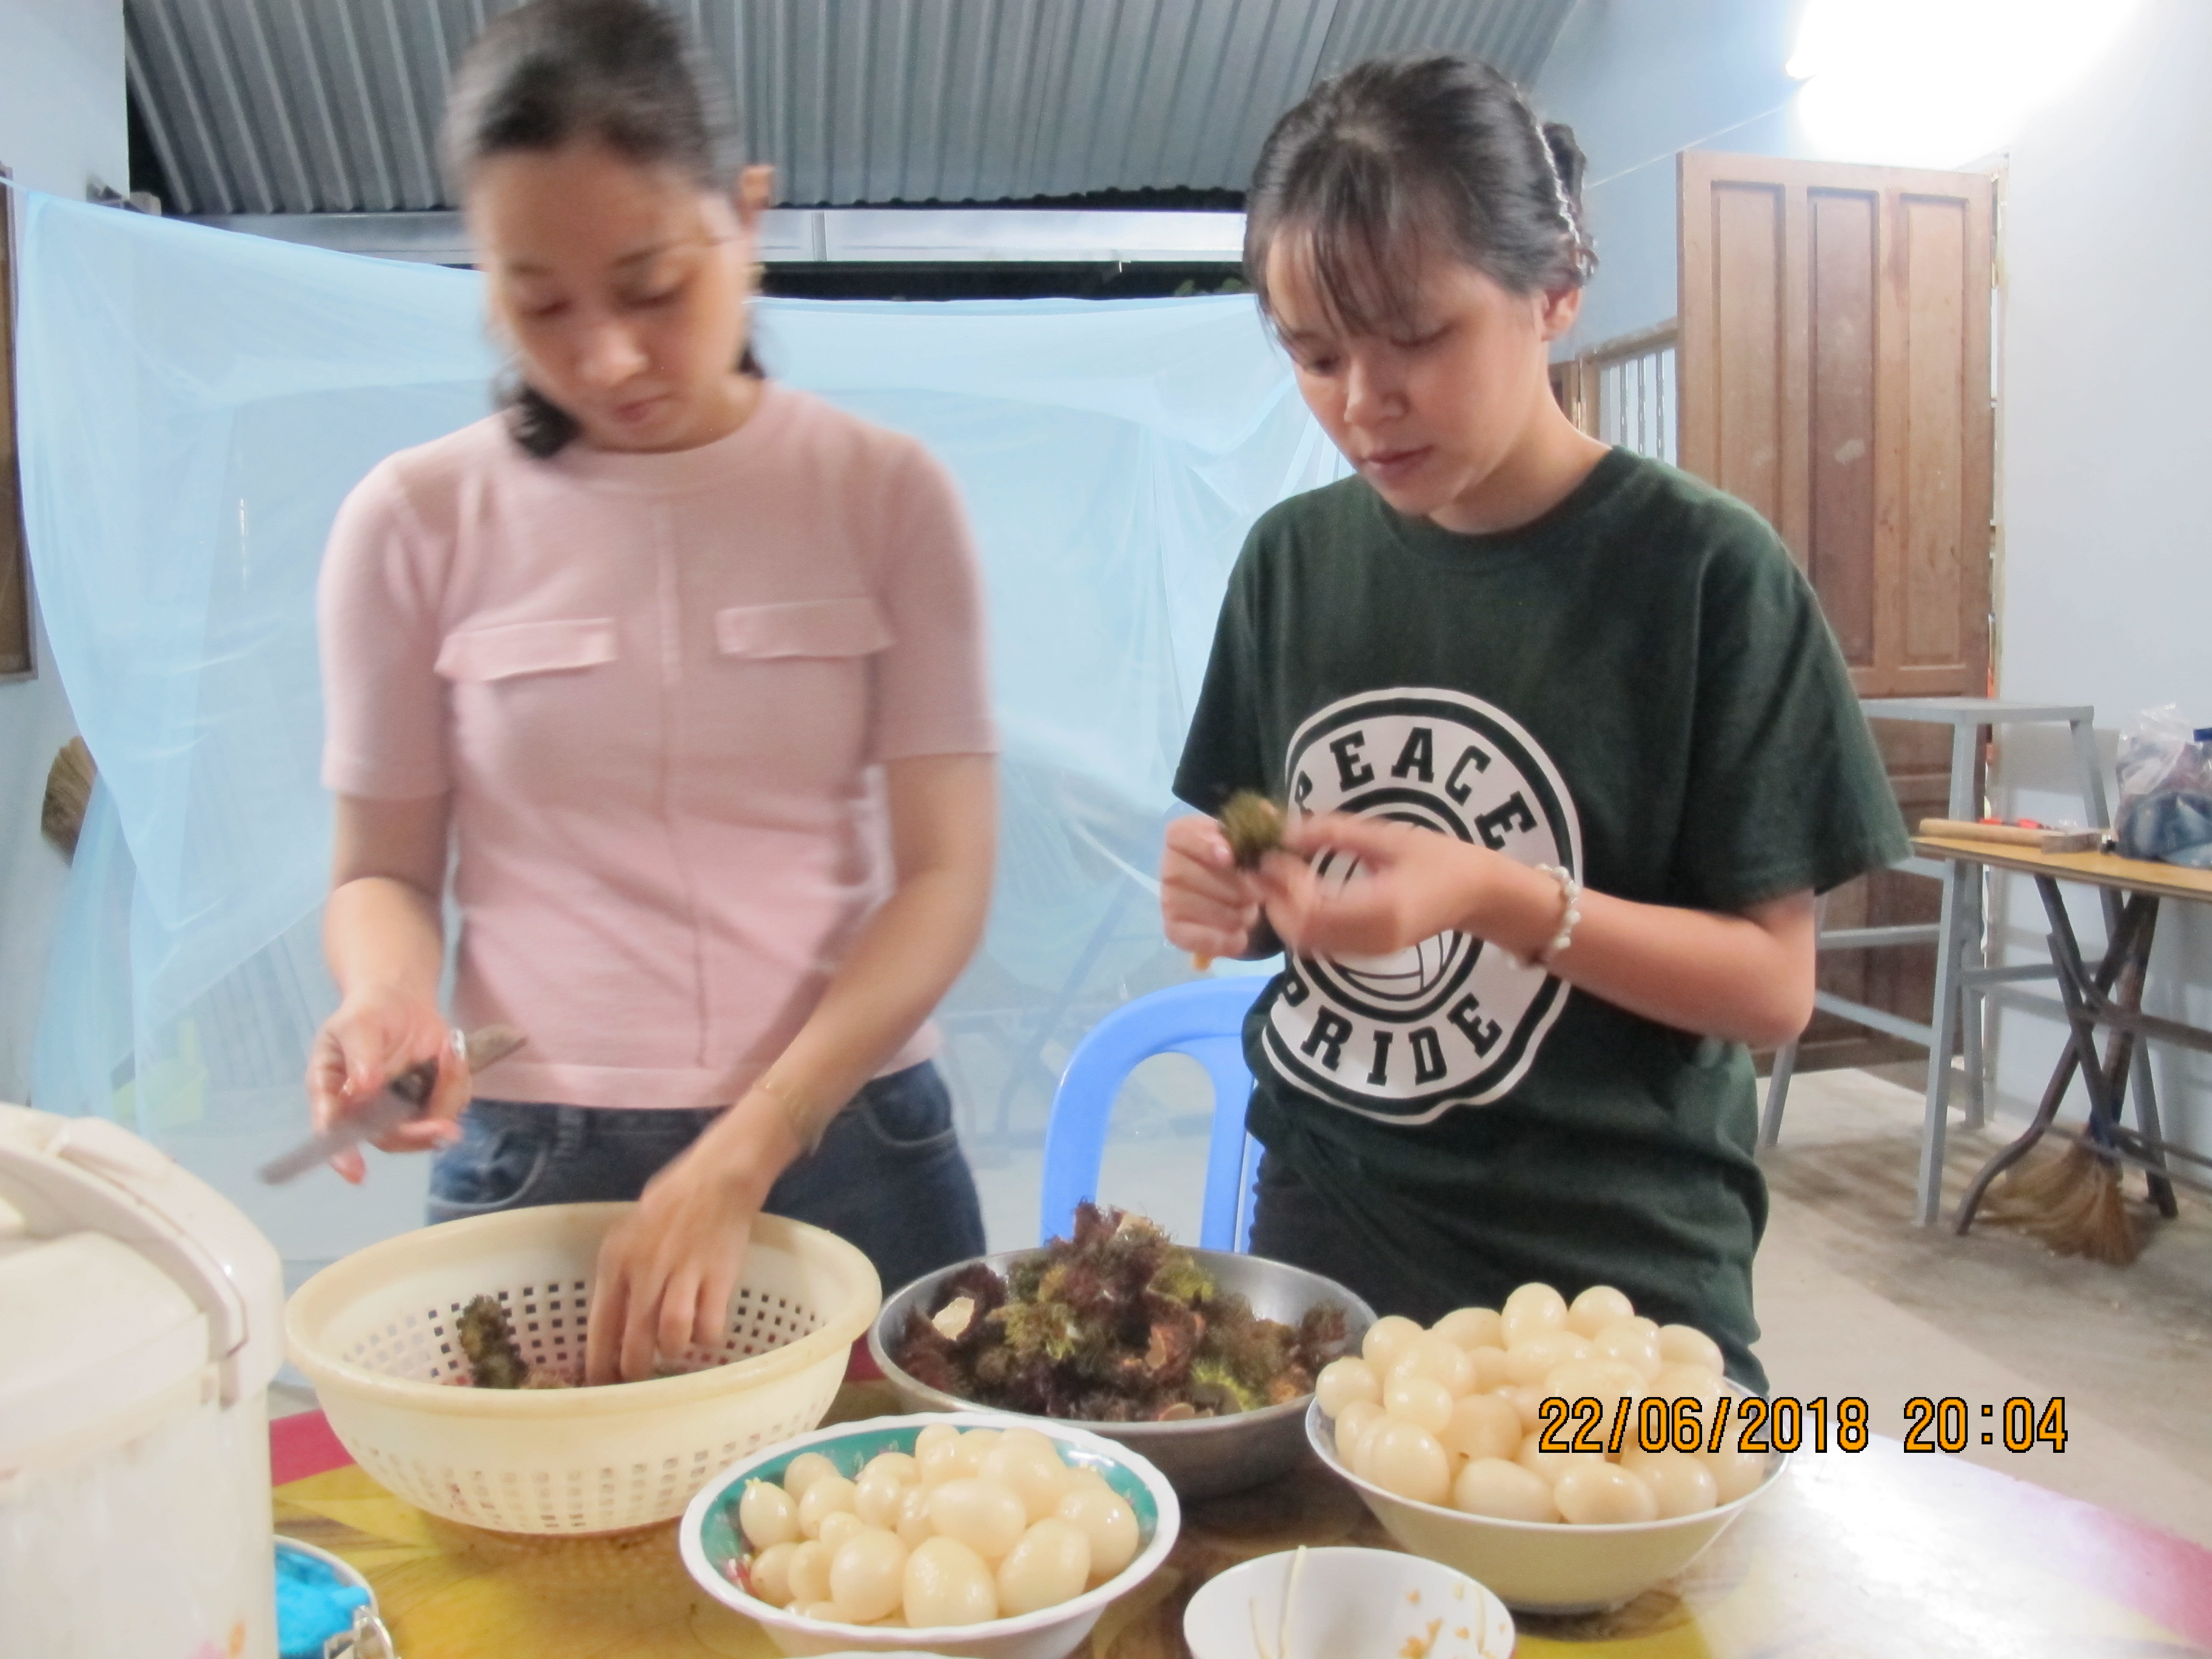 We prepare our own food